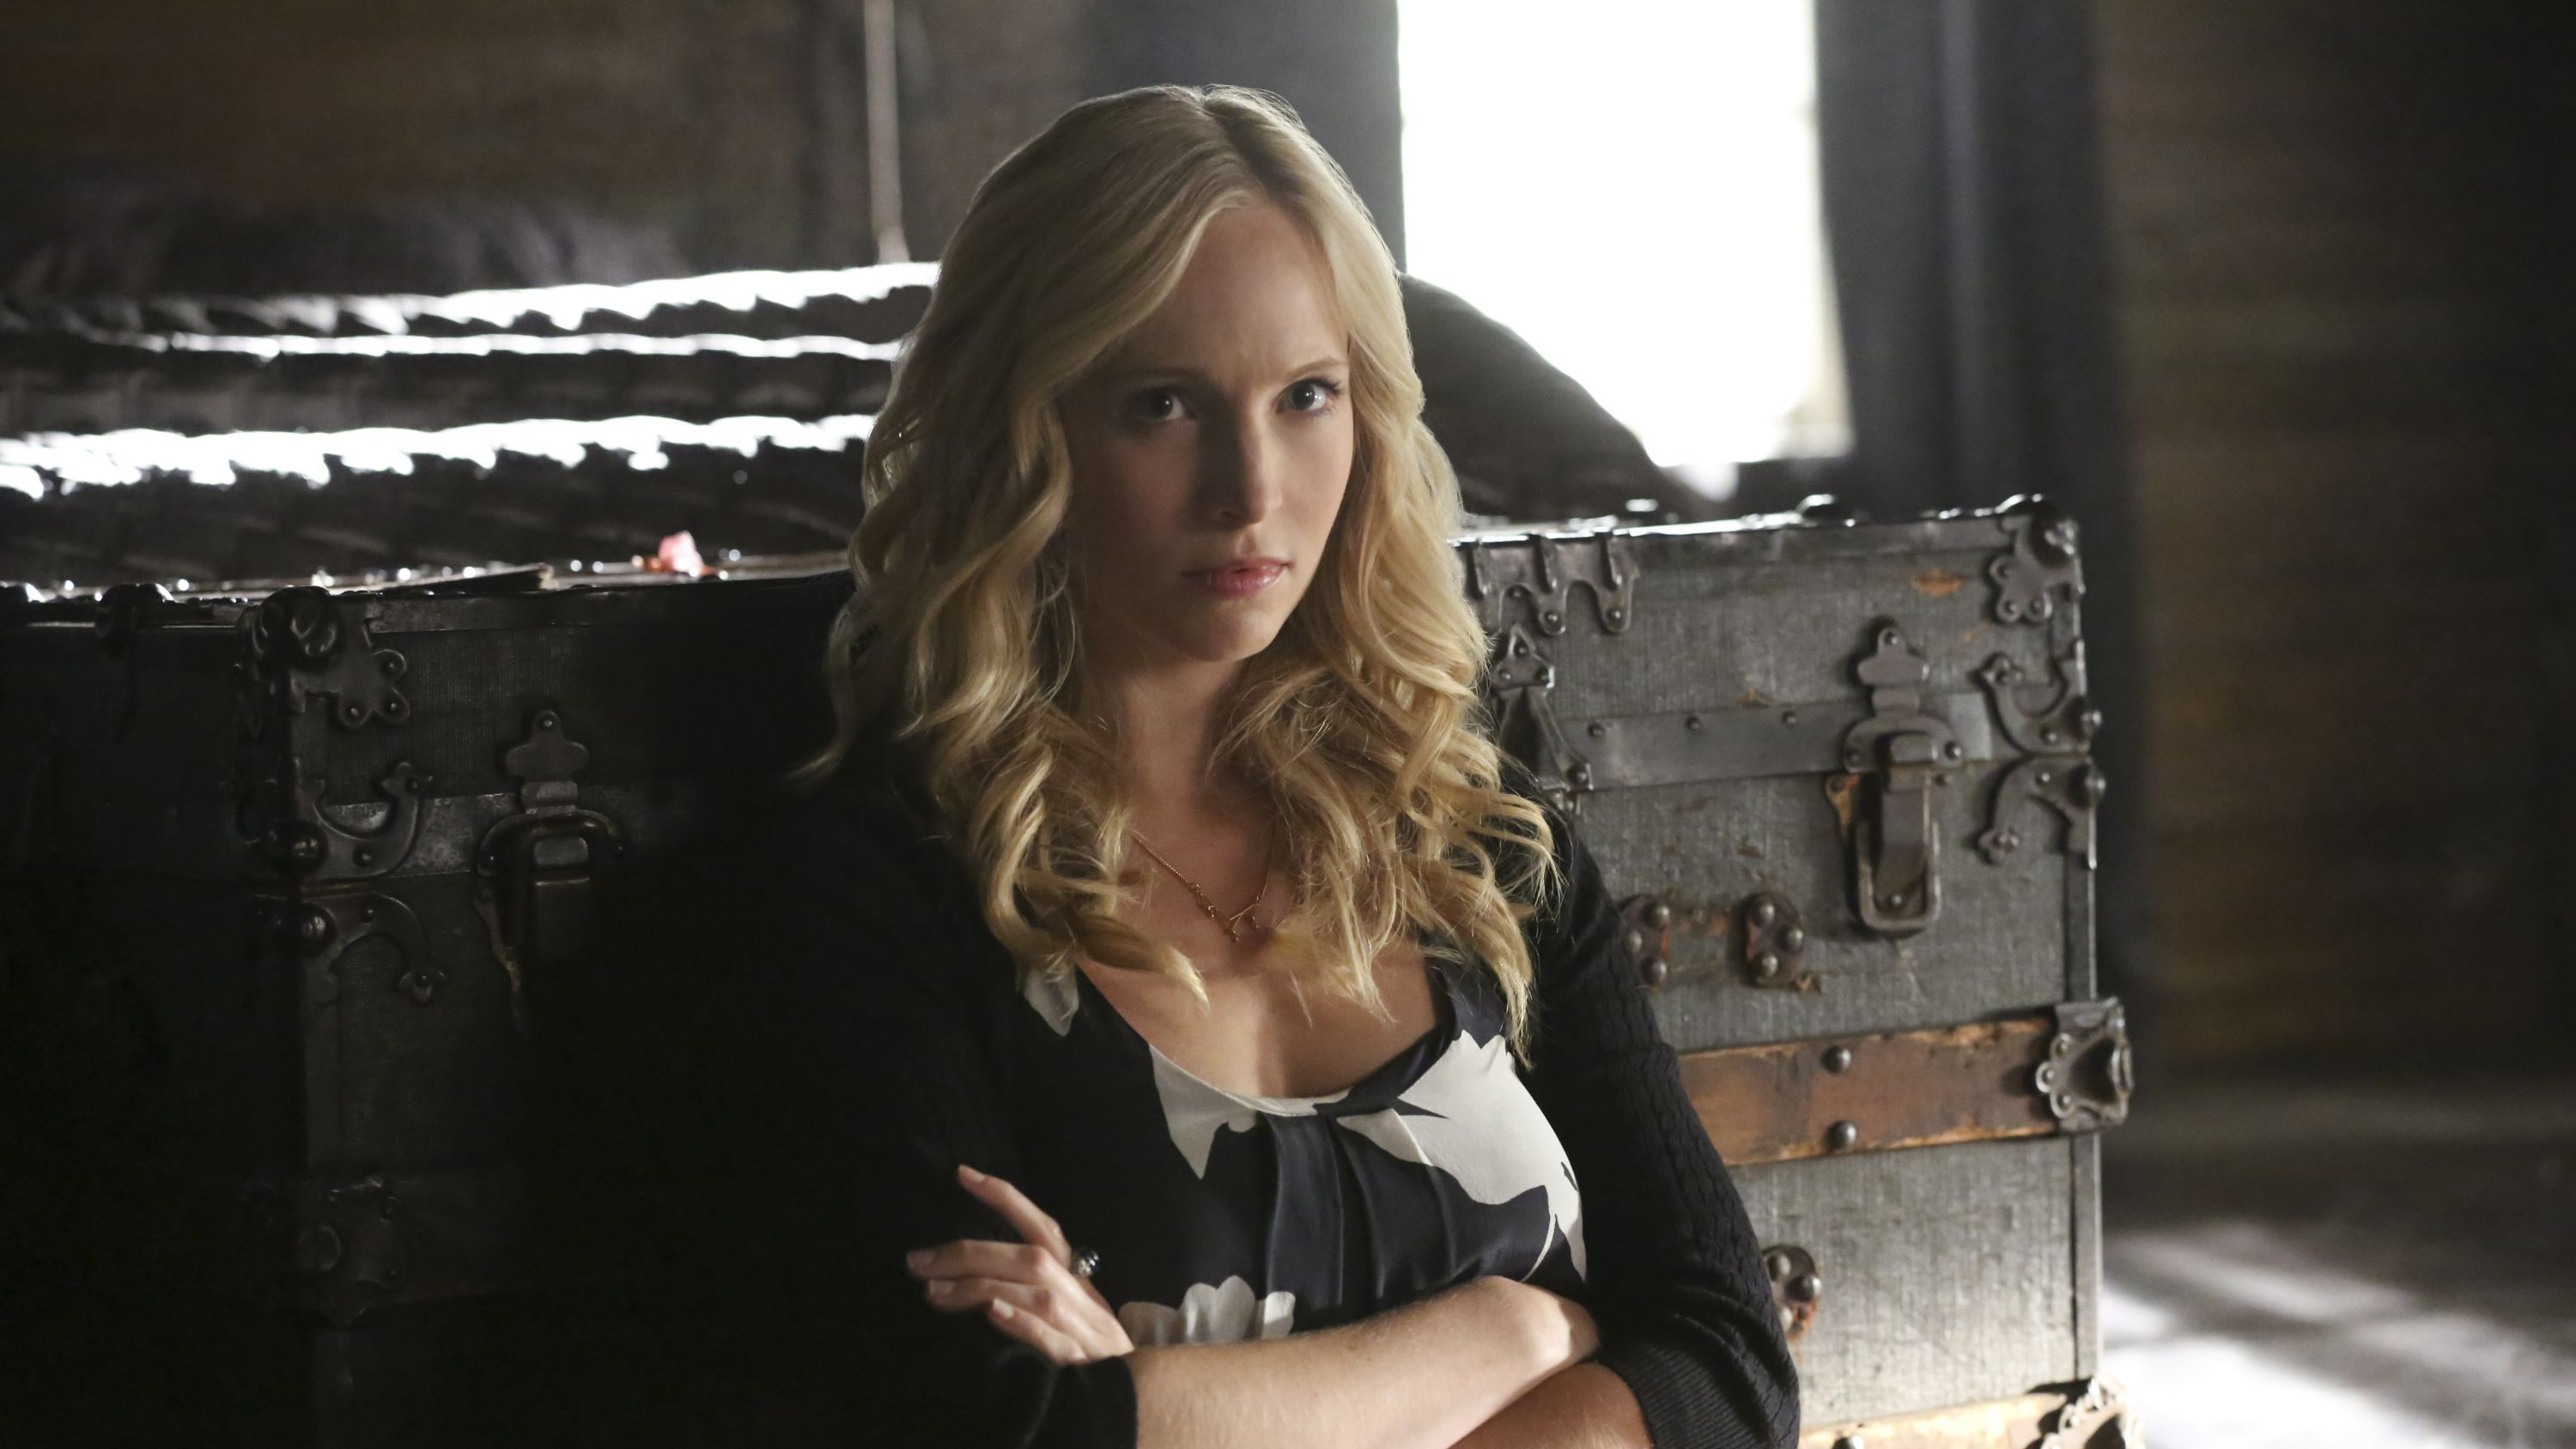 Caroline Forbes from The Vampire Diaries had tremendous character growth and ended up being the real heartthrob of the show.